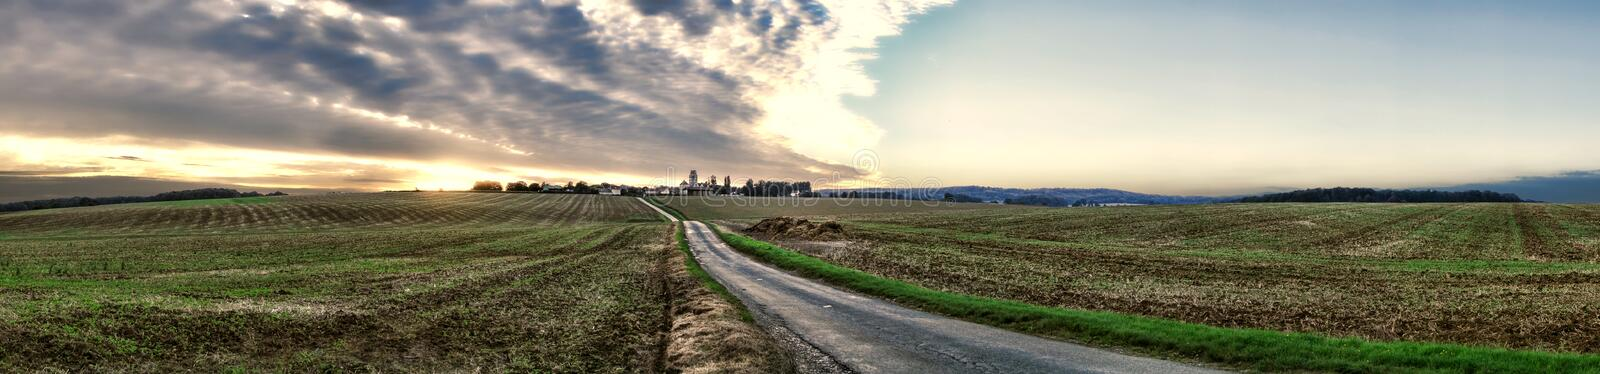 Sunset on The Vexin Region Rural Village in France stock photography